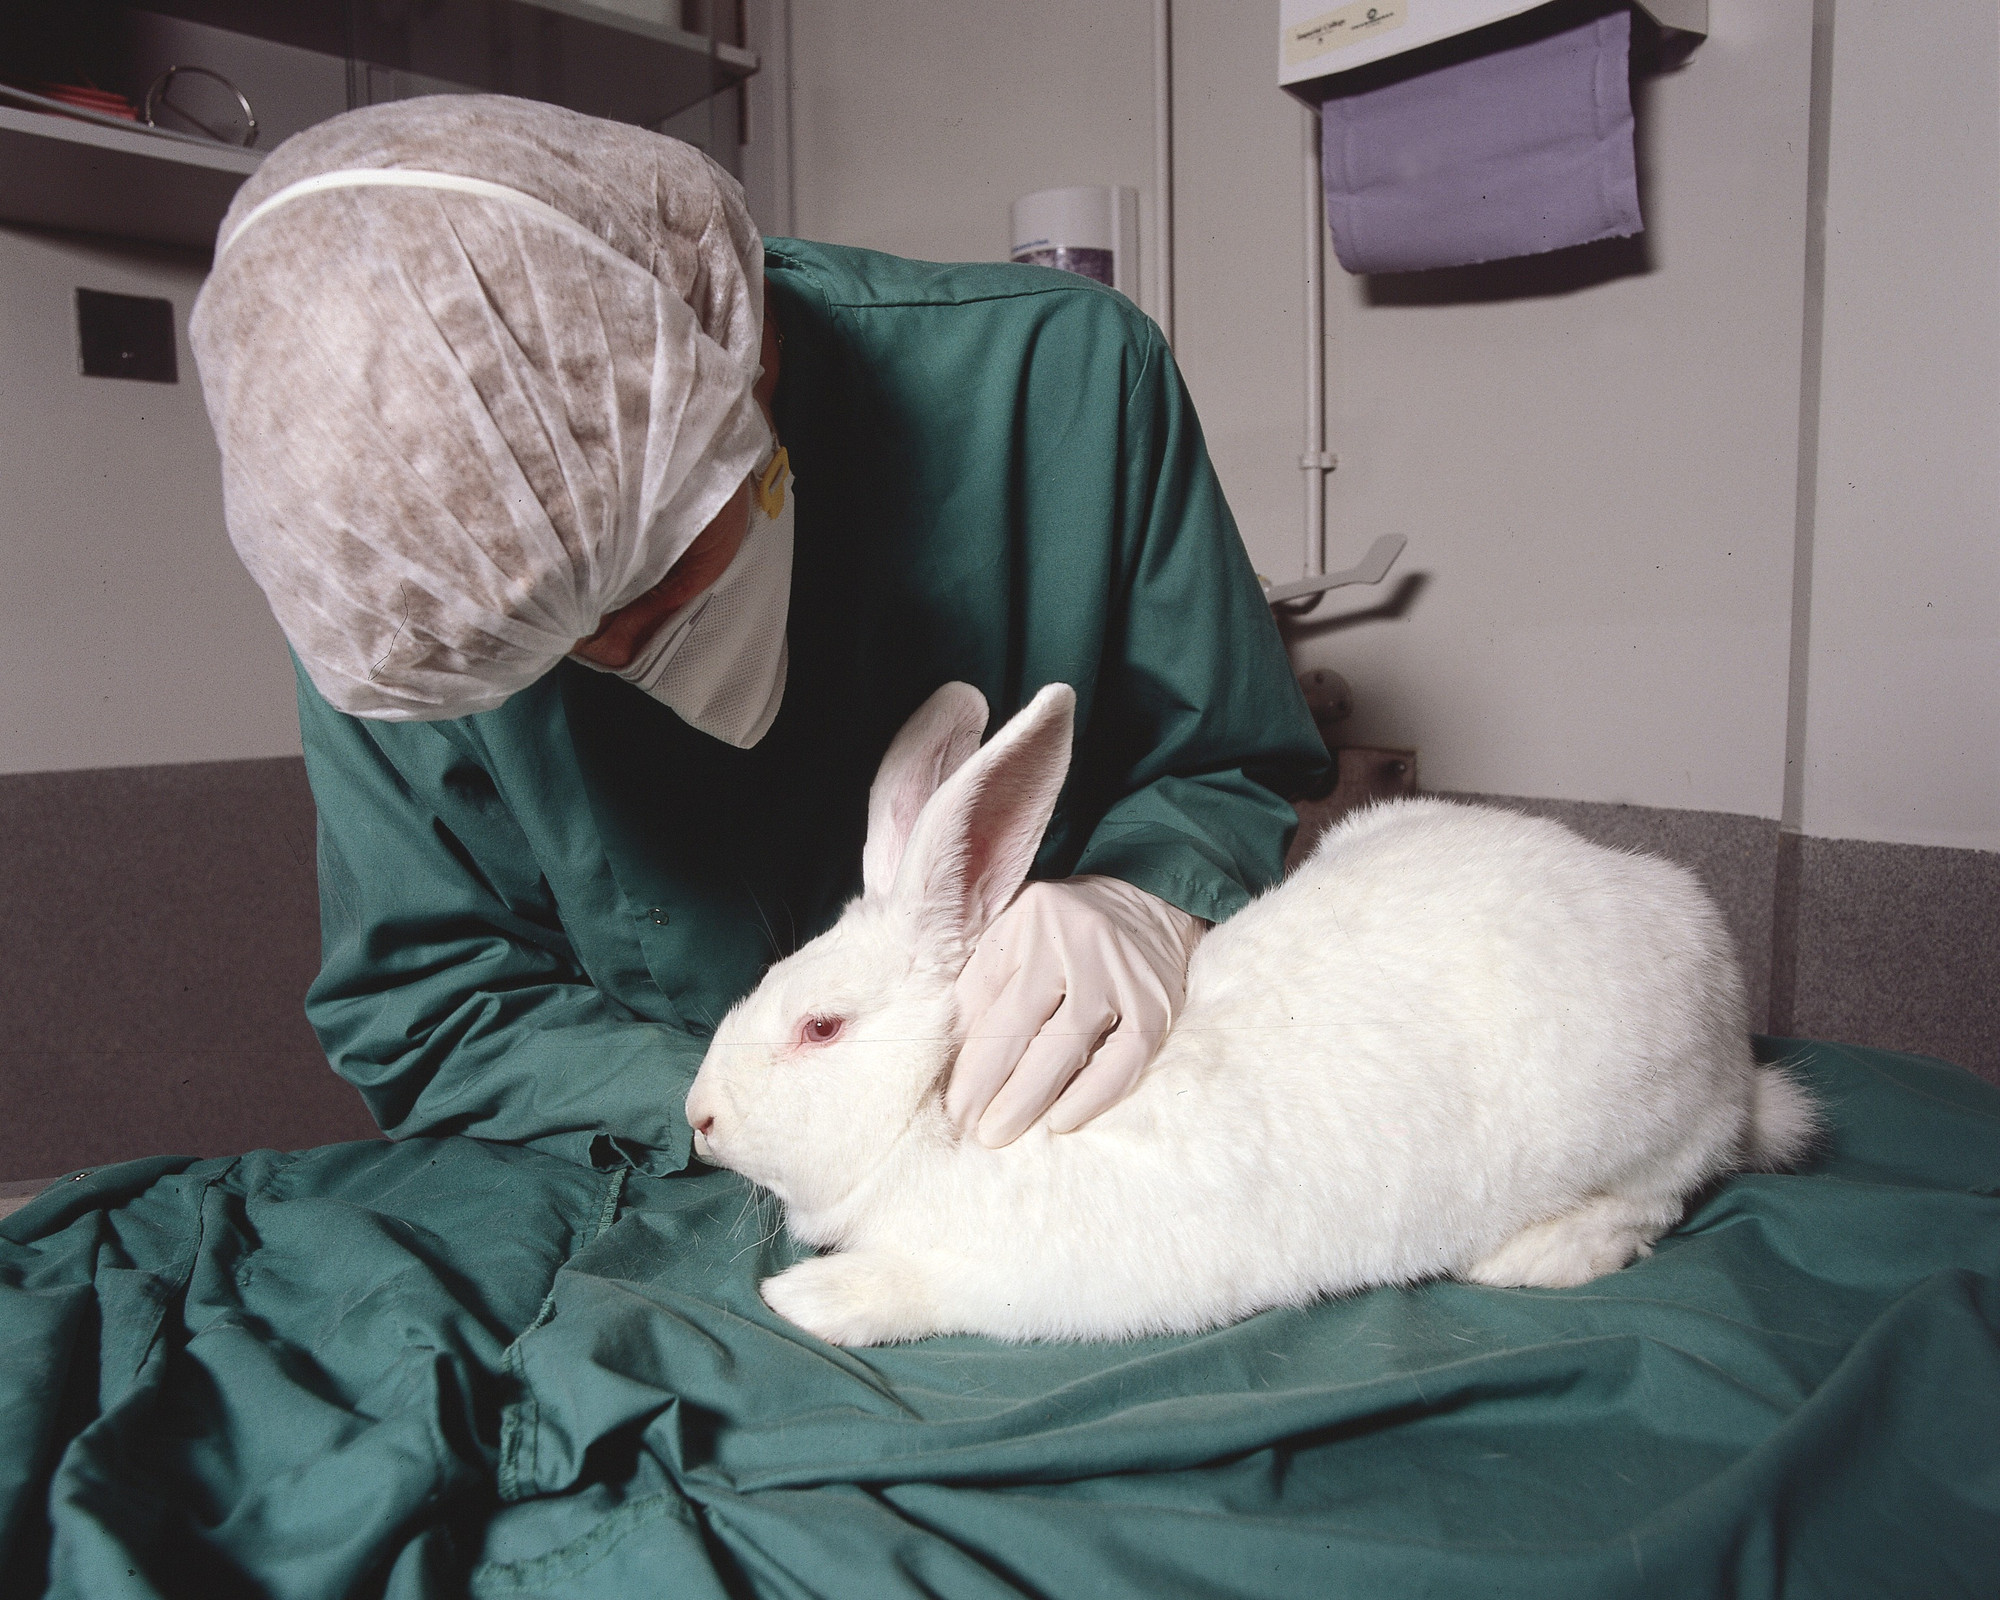 A rabbit undergoes animal testing. Animals are often treated poorly for testing and suffer extreme side effects. (credit: Courtesy of Understanding Animal Testing, via Flickr)